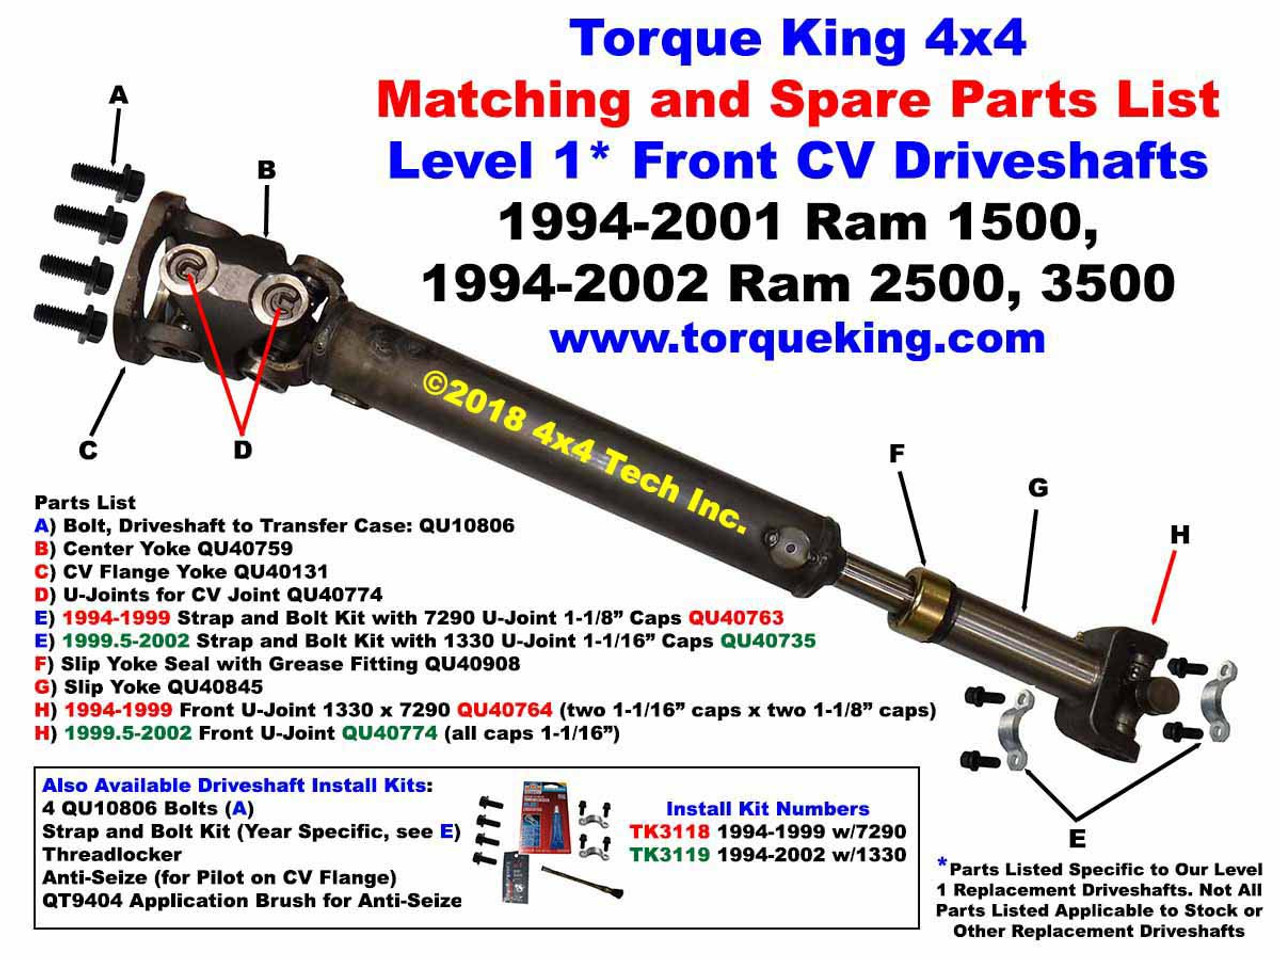 New! Level 1* Front CV Driveshaft Exploded Views for 1994 ...